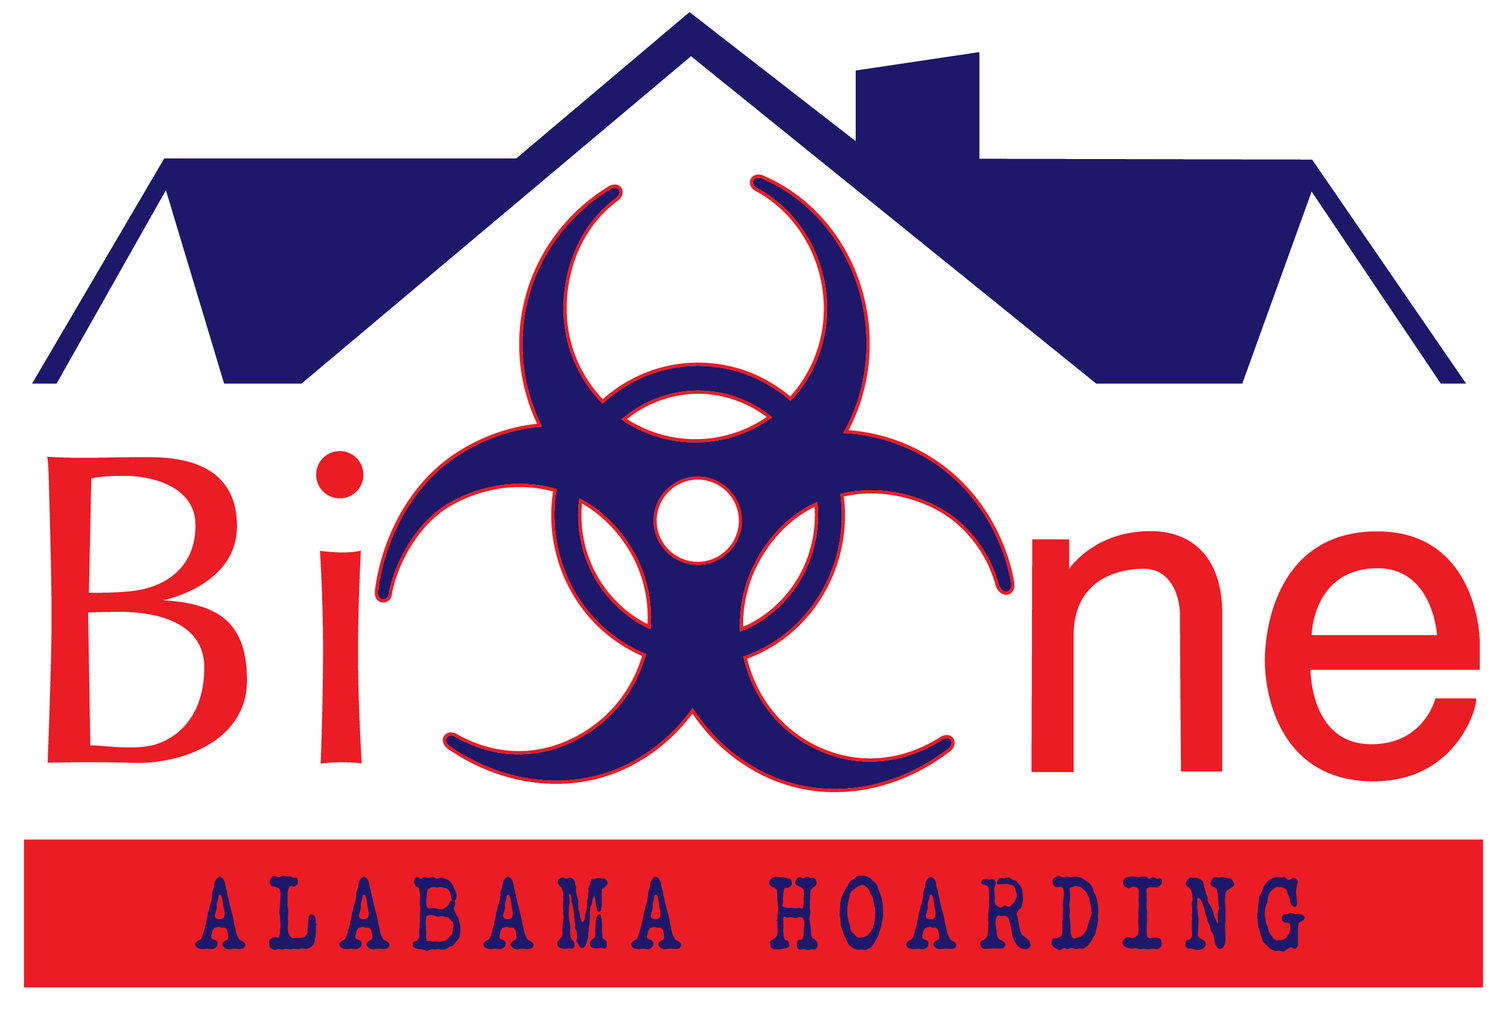 Alabama's #1 Hoarding Clean Up Service